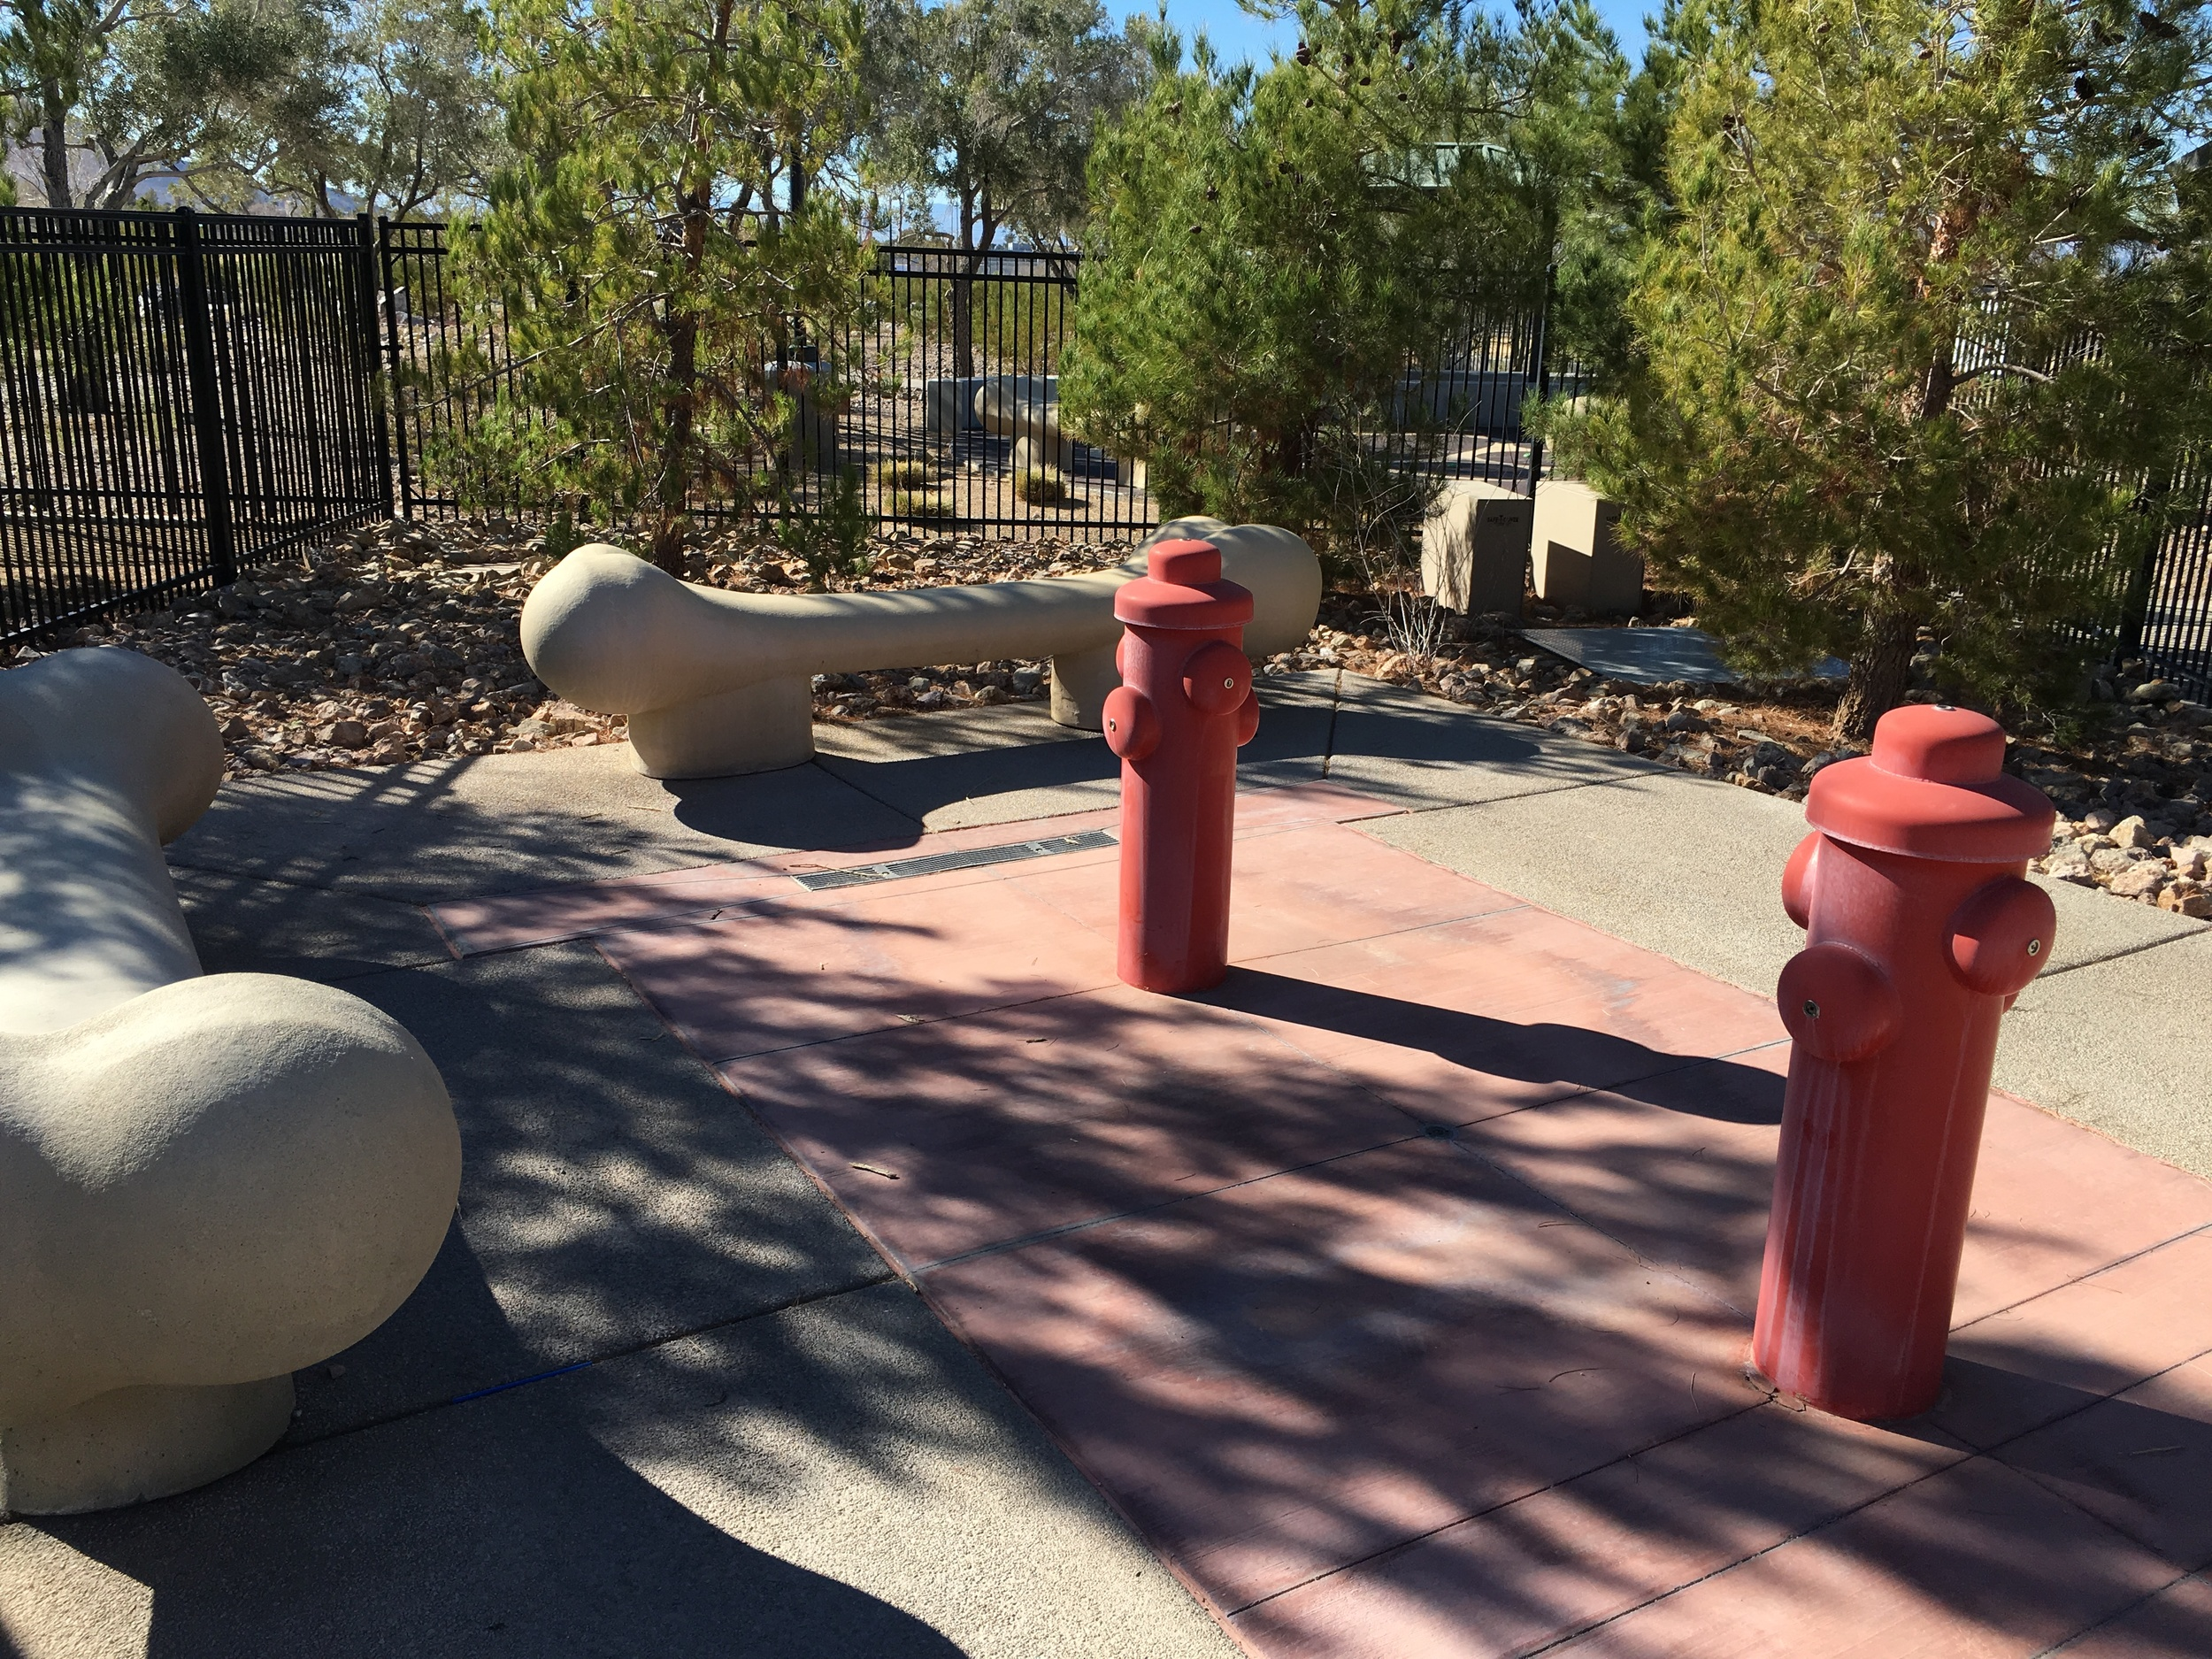 Dog Bone Themed Benches, and Fire Hydrants.